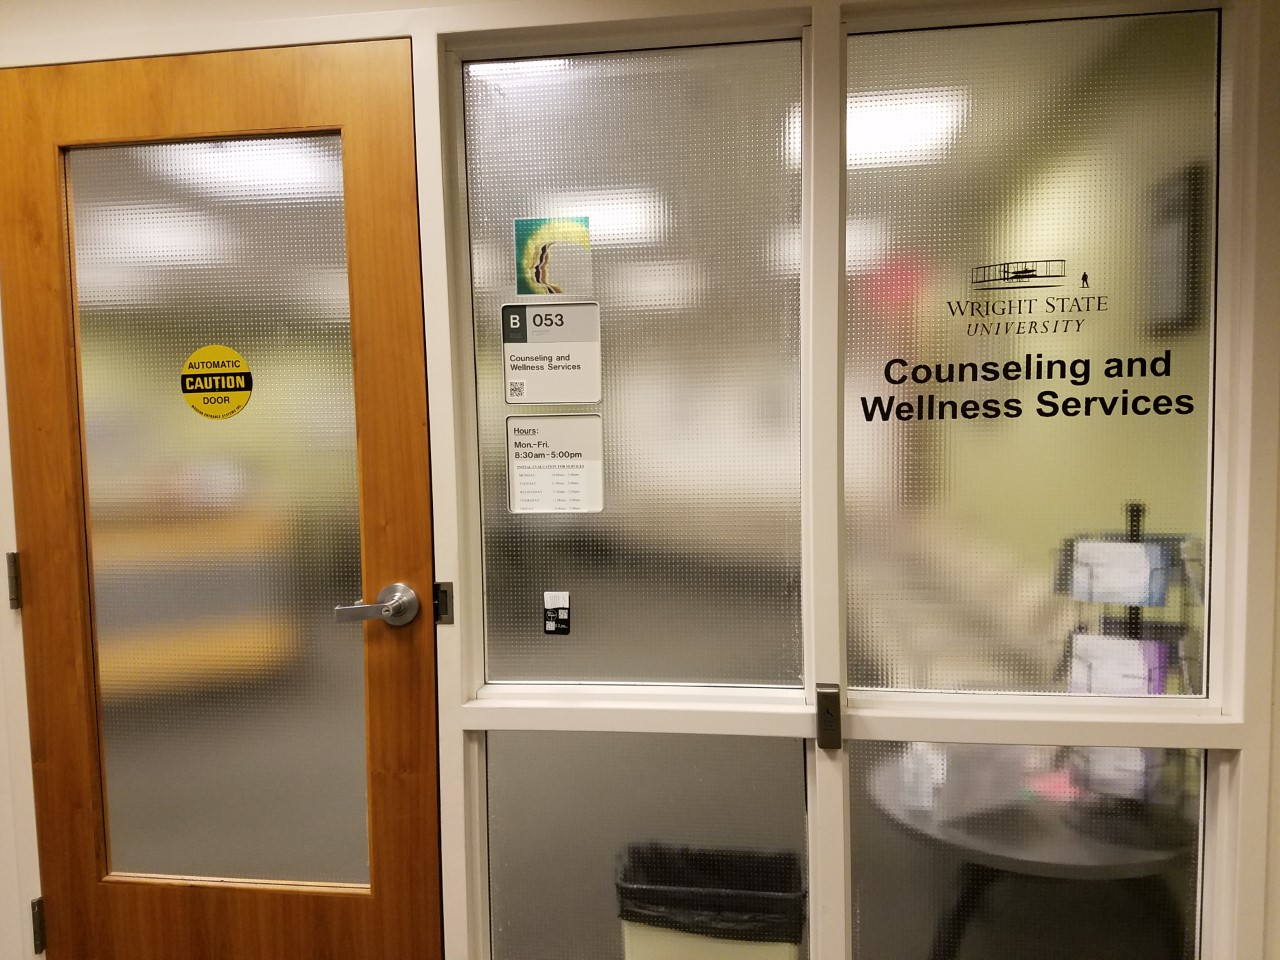 Counseling and Wellness Services | Photo by Jessica Fugett | The Wright State Guardian